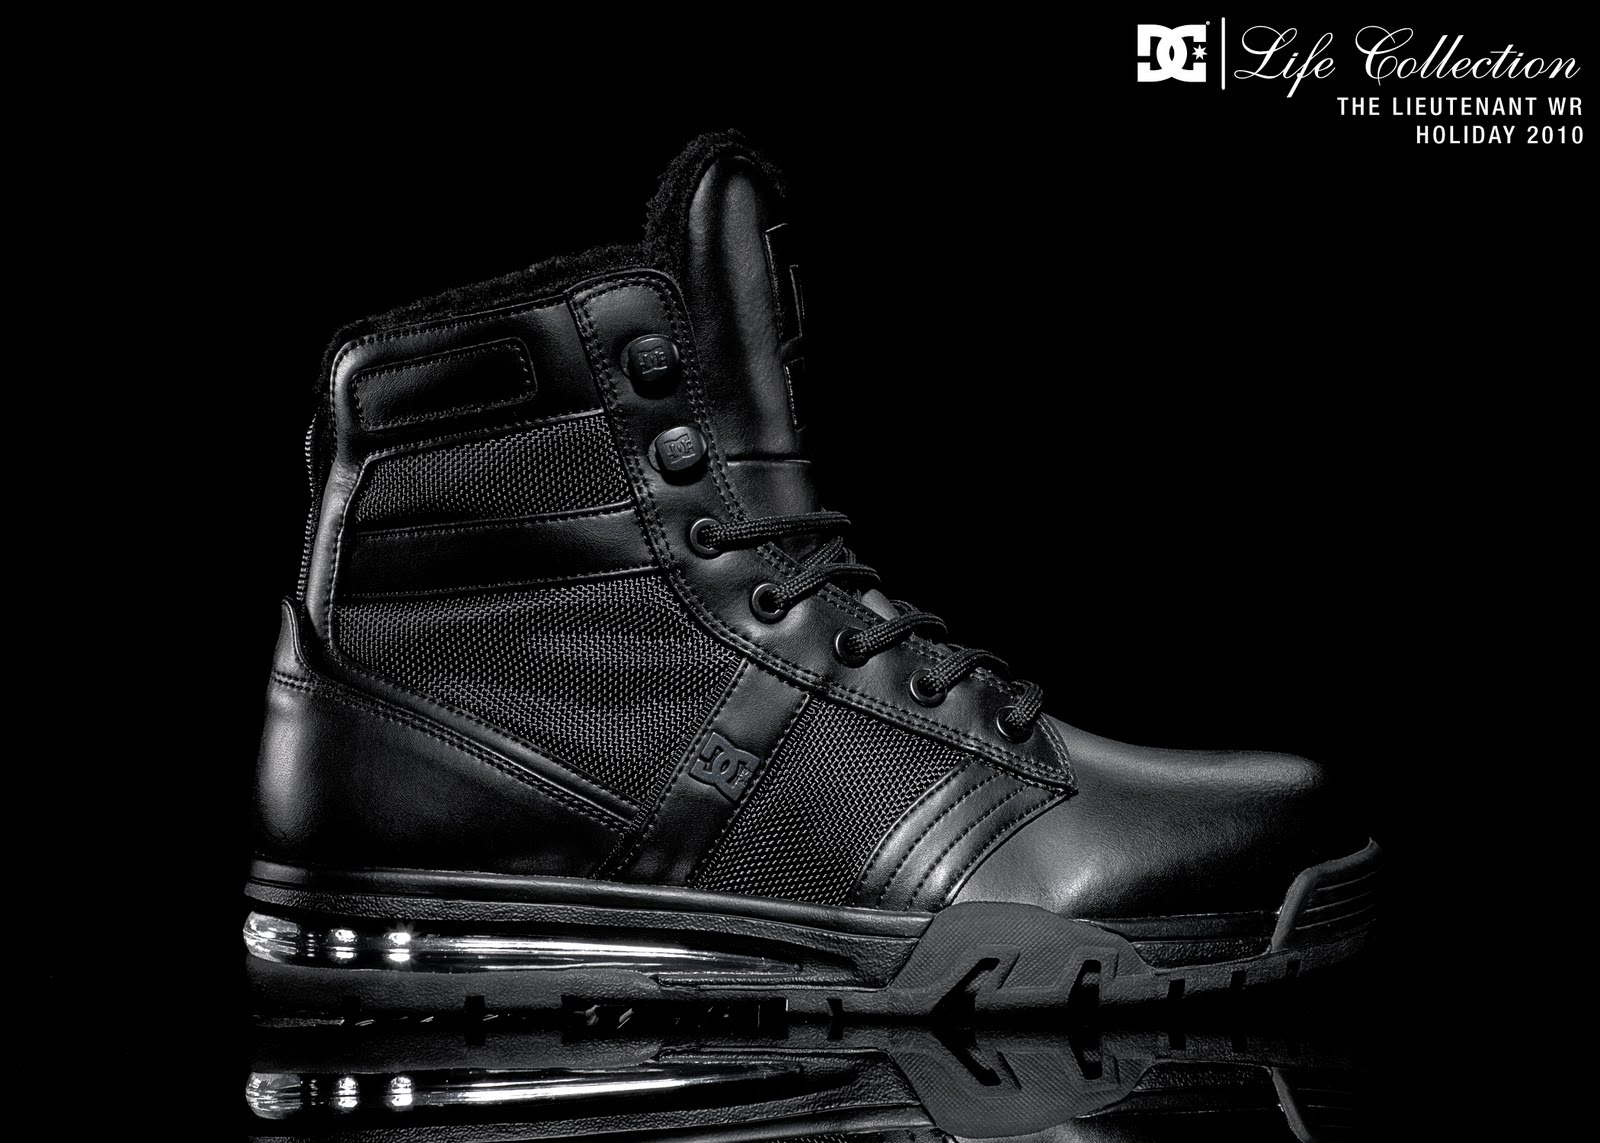 The LiFE Collection Lieutenent WR boot (an off spring of the DC Admiral and  Versatile Hi) cd1a13972960